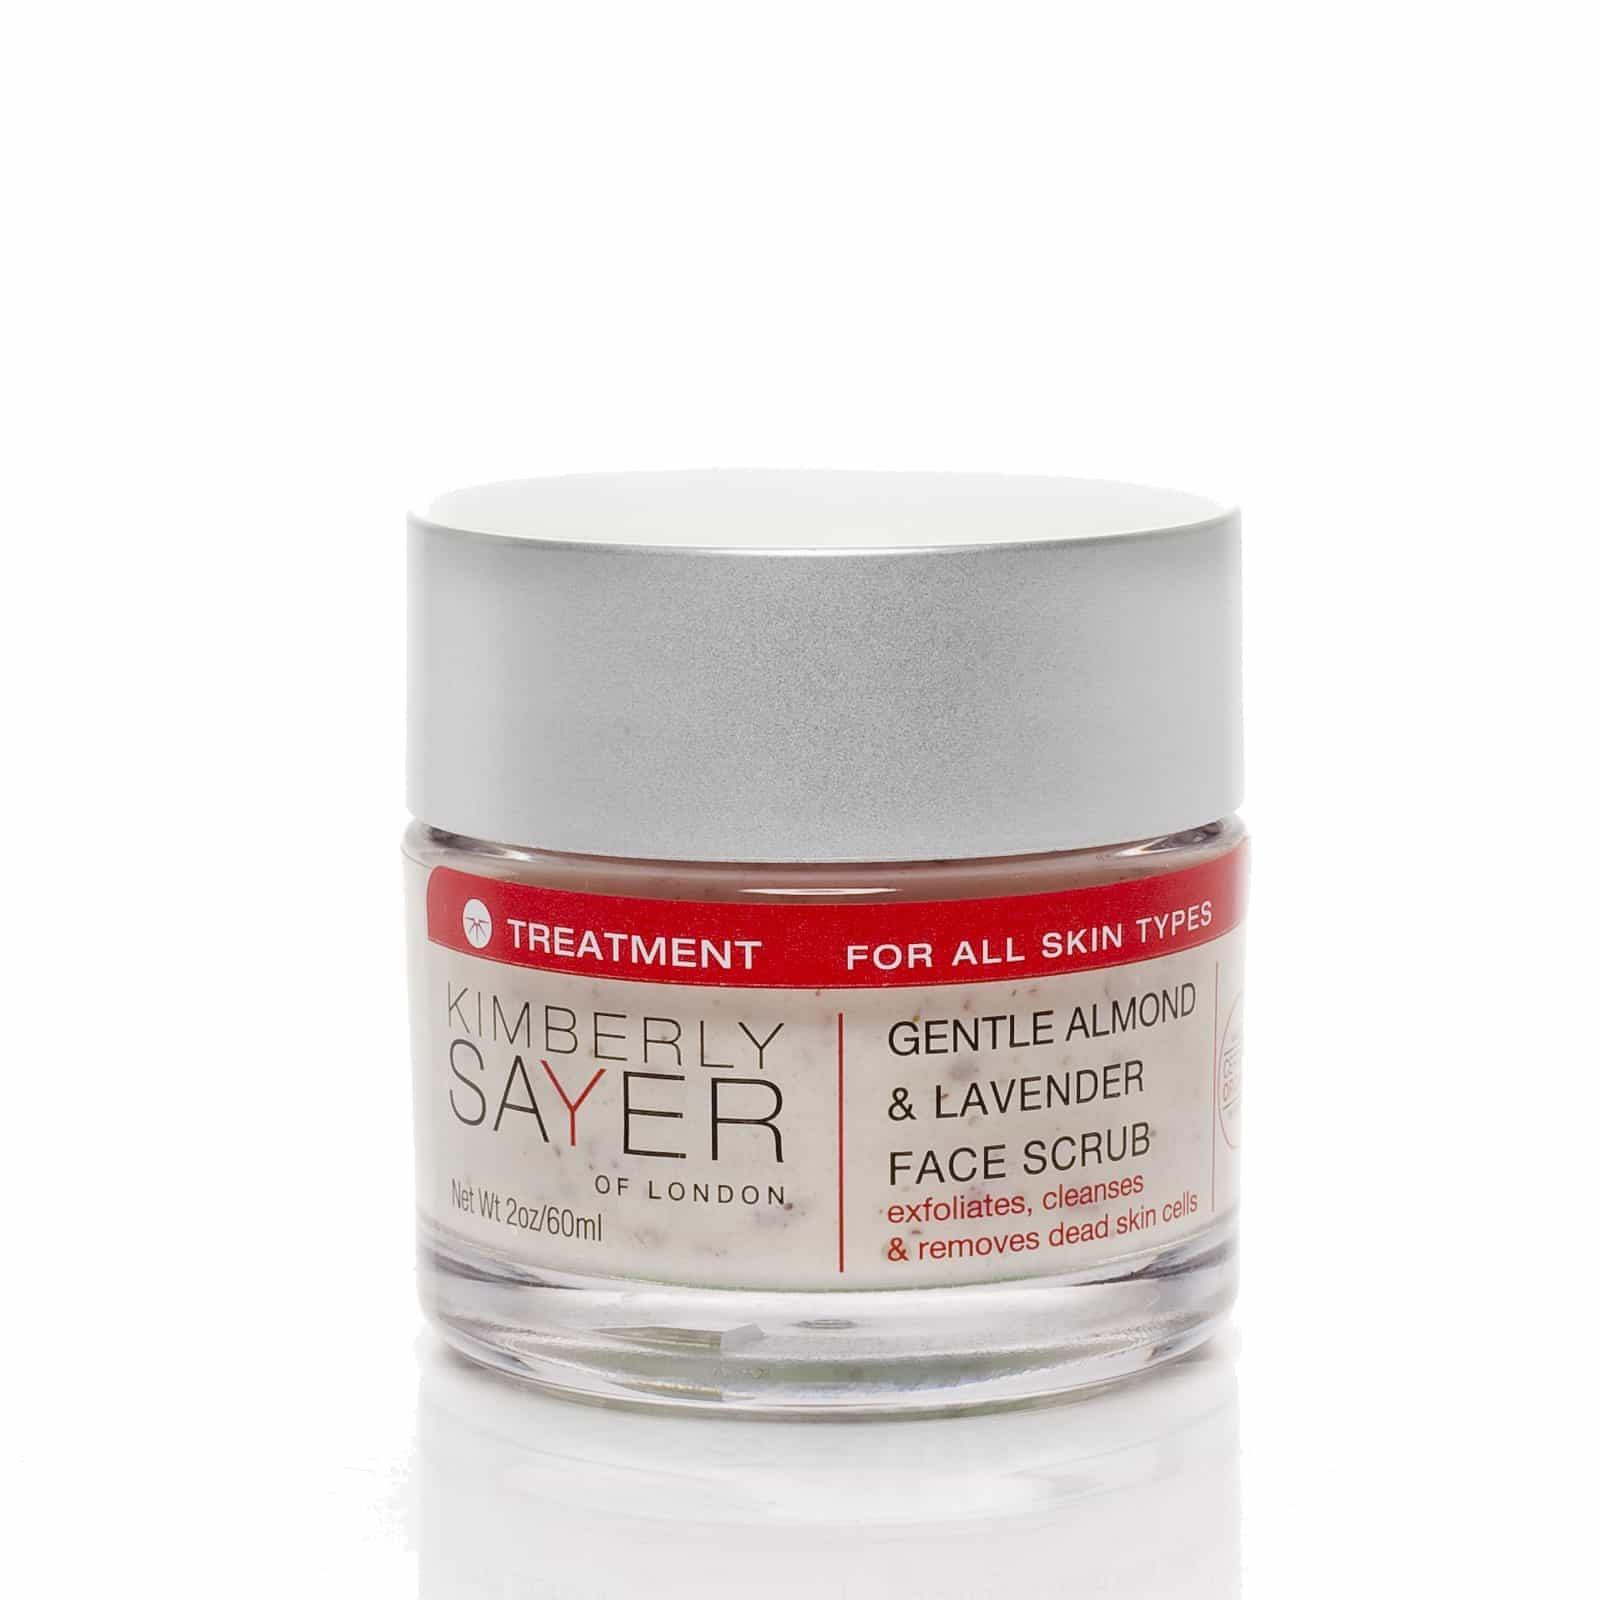 Kimberly Sayer Gentle Almond Lavender Face Scrub